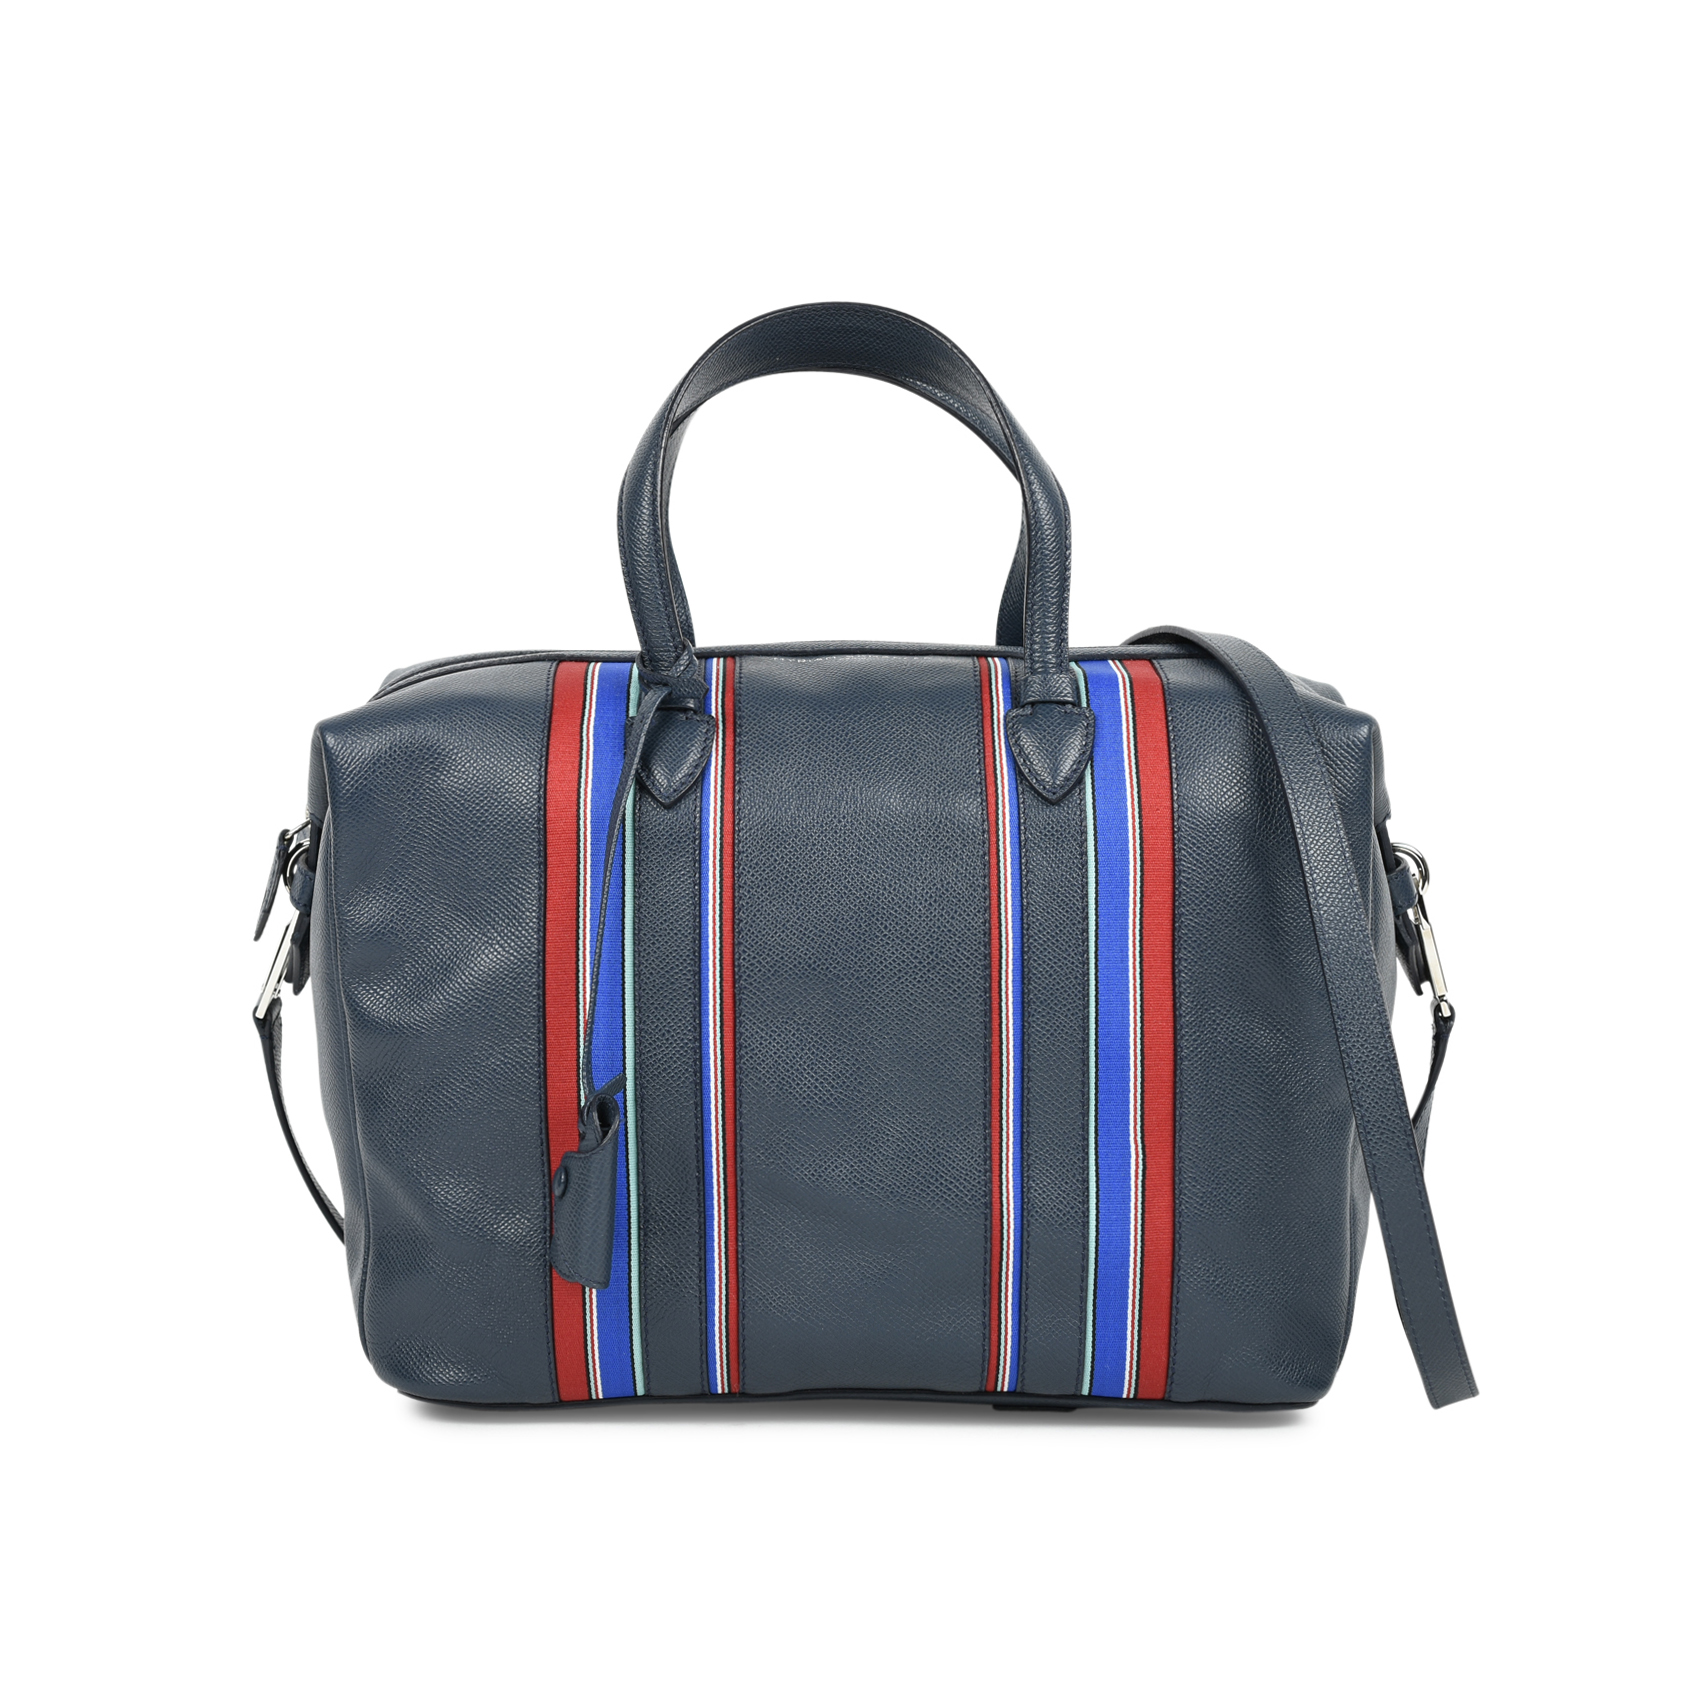 ae6679b17d9 Authentic Second Hand Myriam Schaefer Flag Tote Bag (PSS-470-00044) - THE  FIFTH COLLECTION